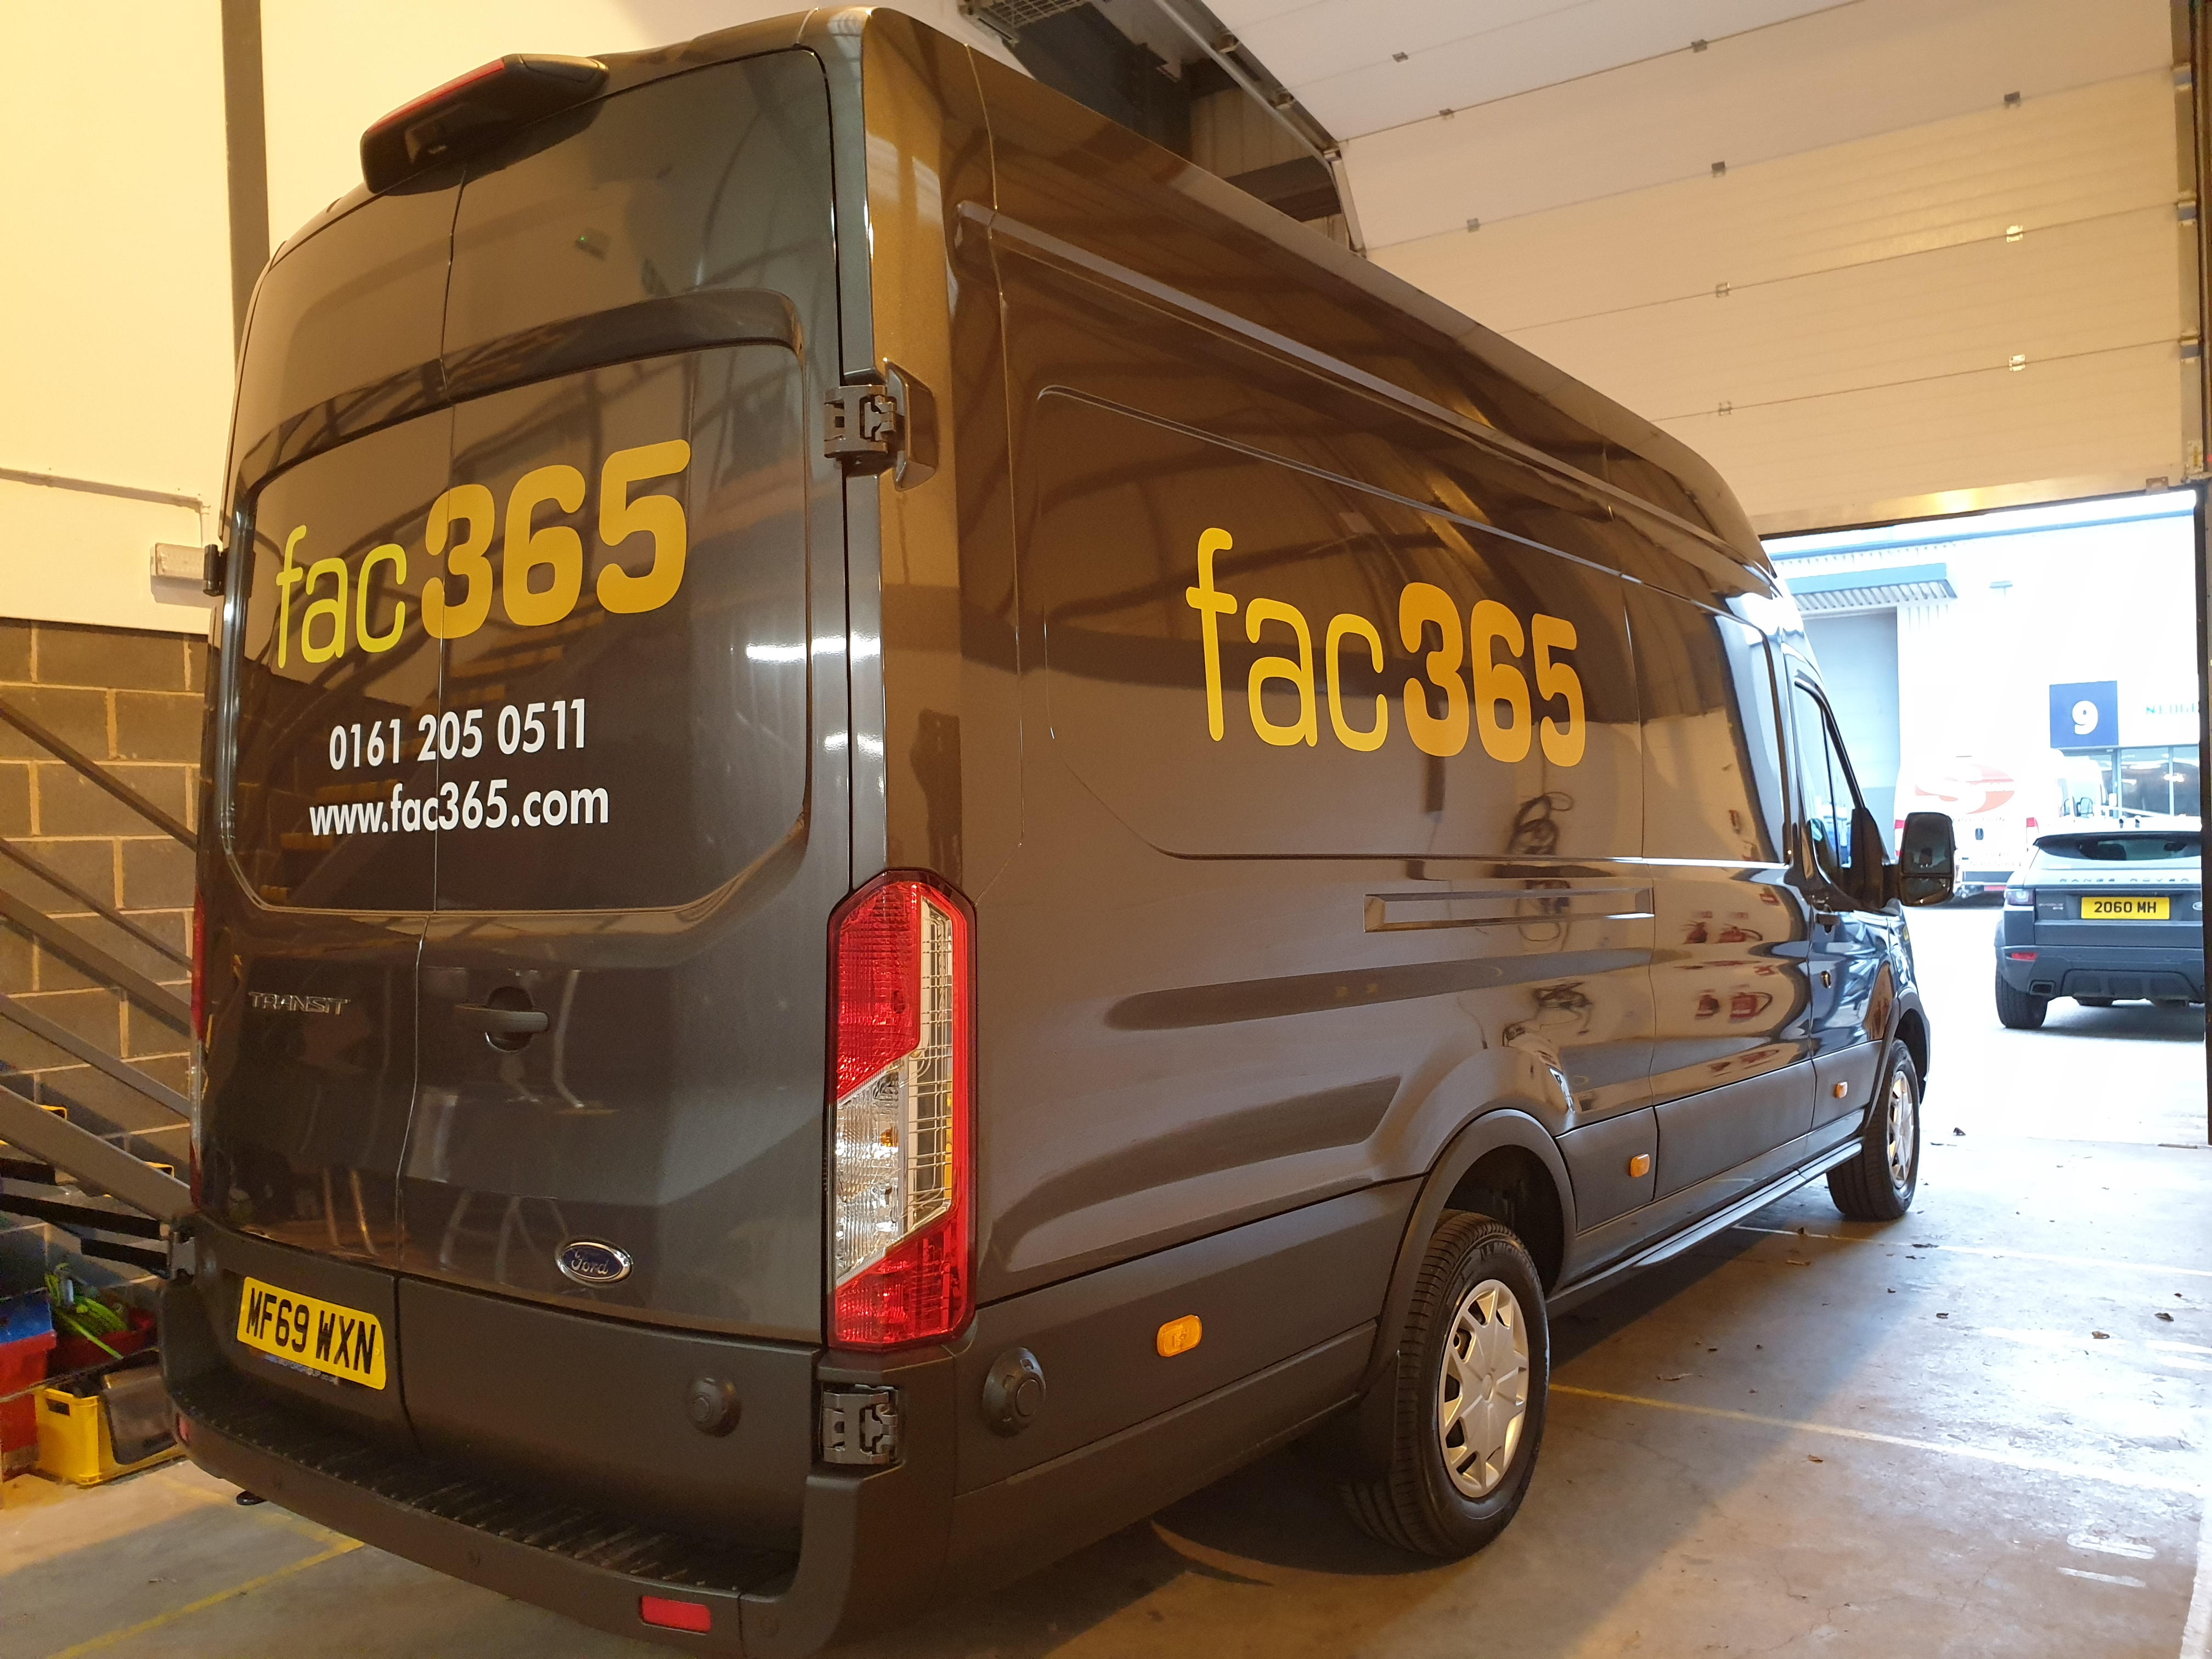 Please welcome our new addition to fac365